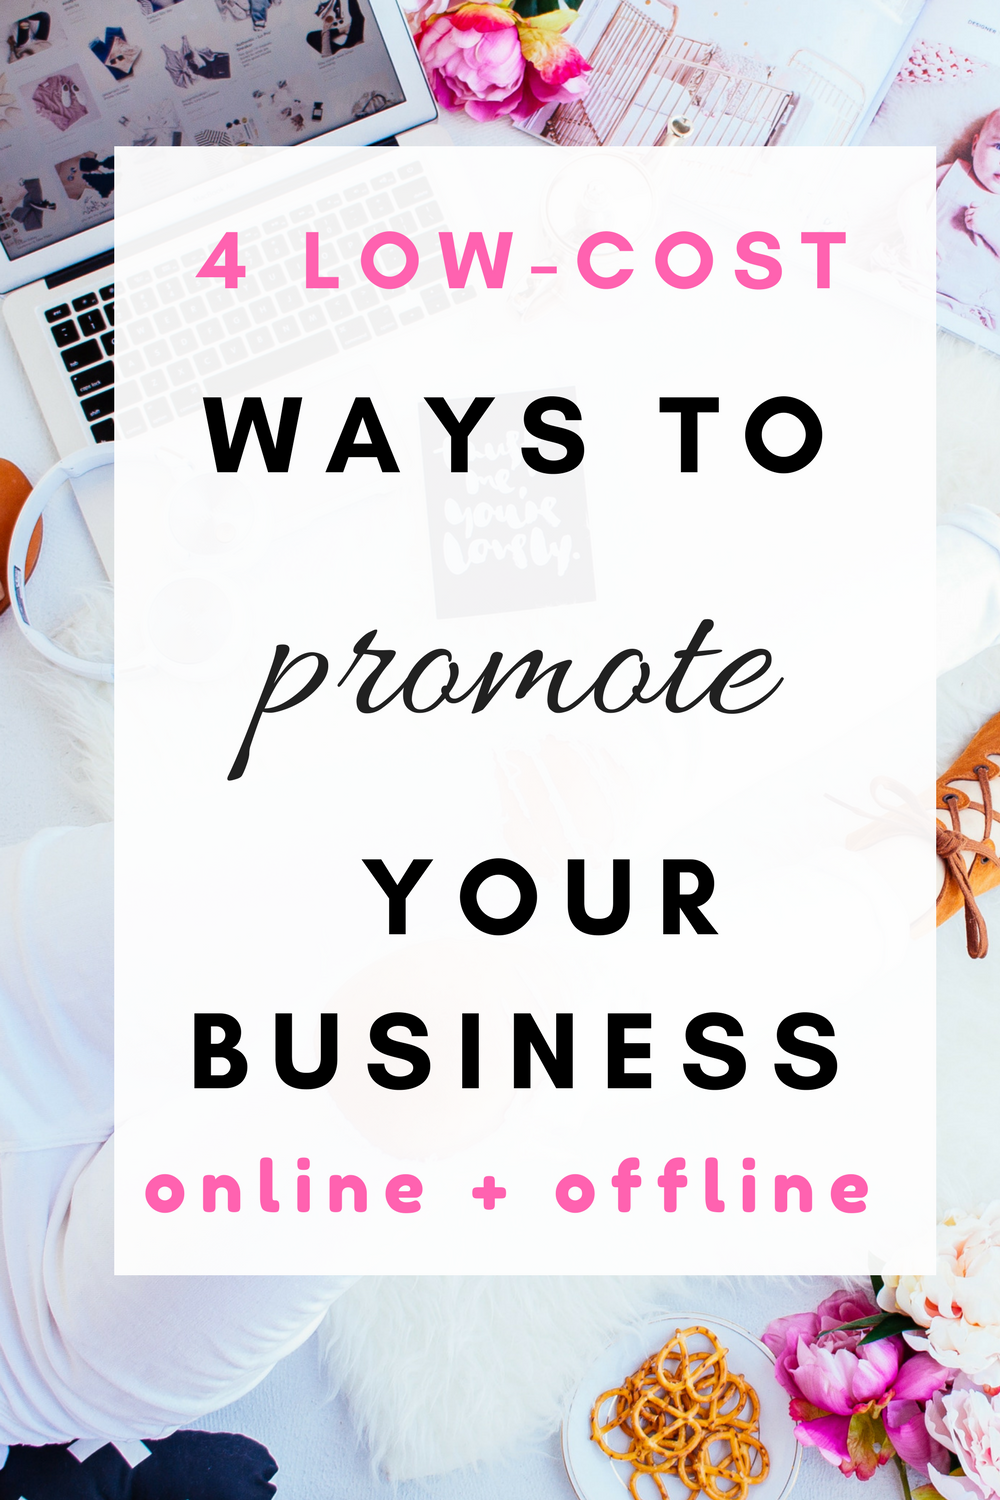 4 Low-cost ways to promote your business online or offline